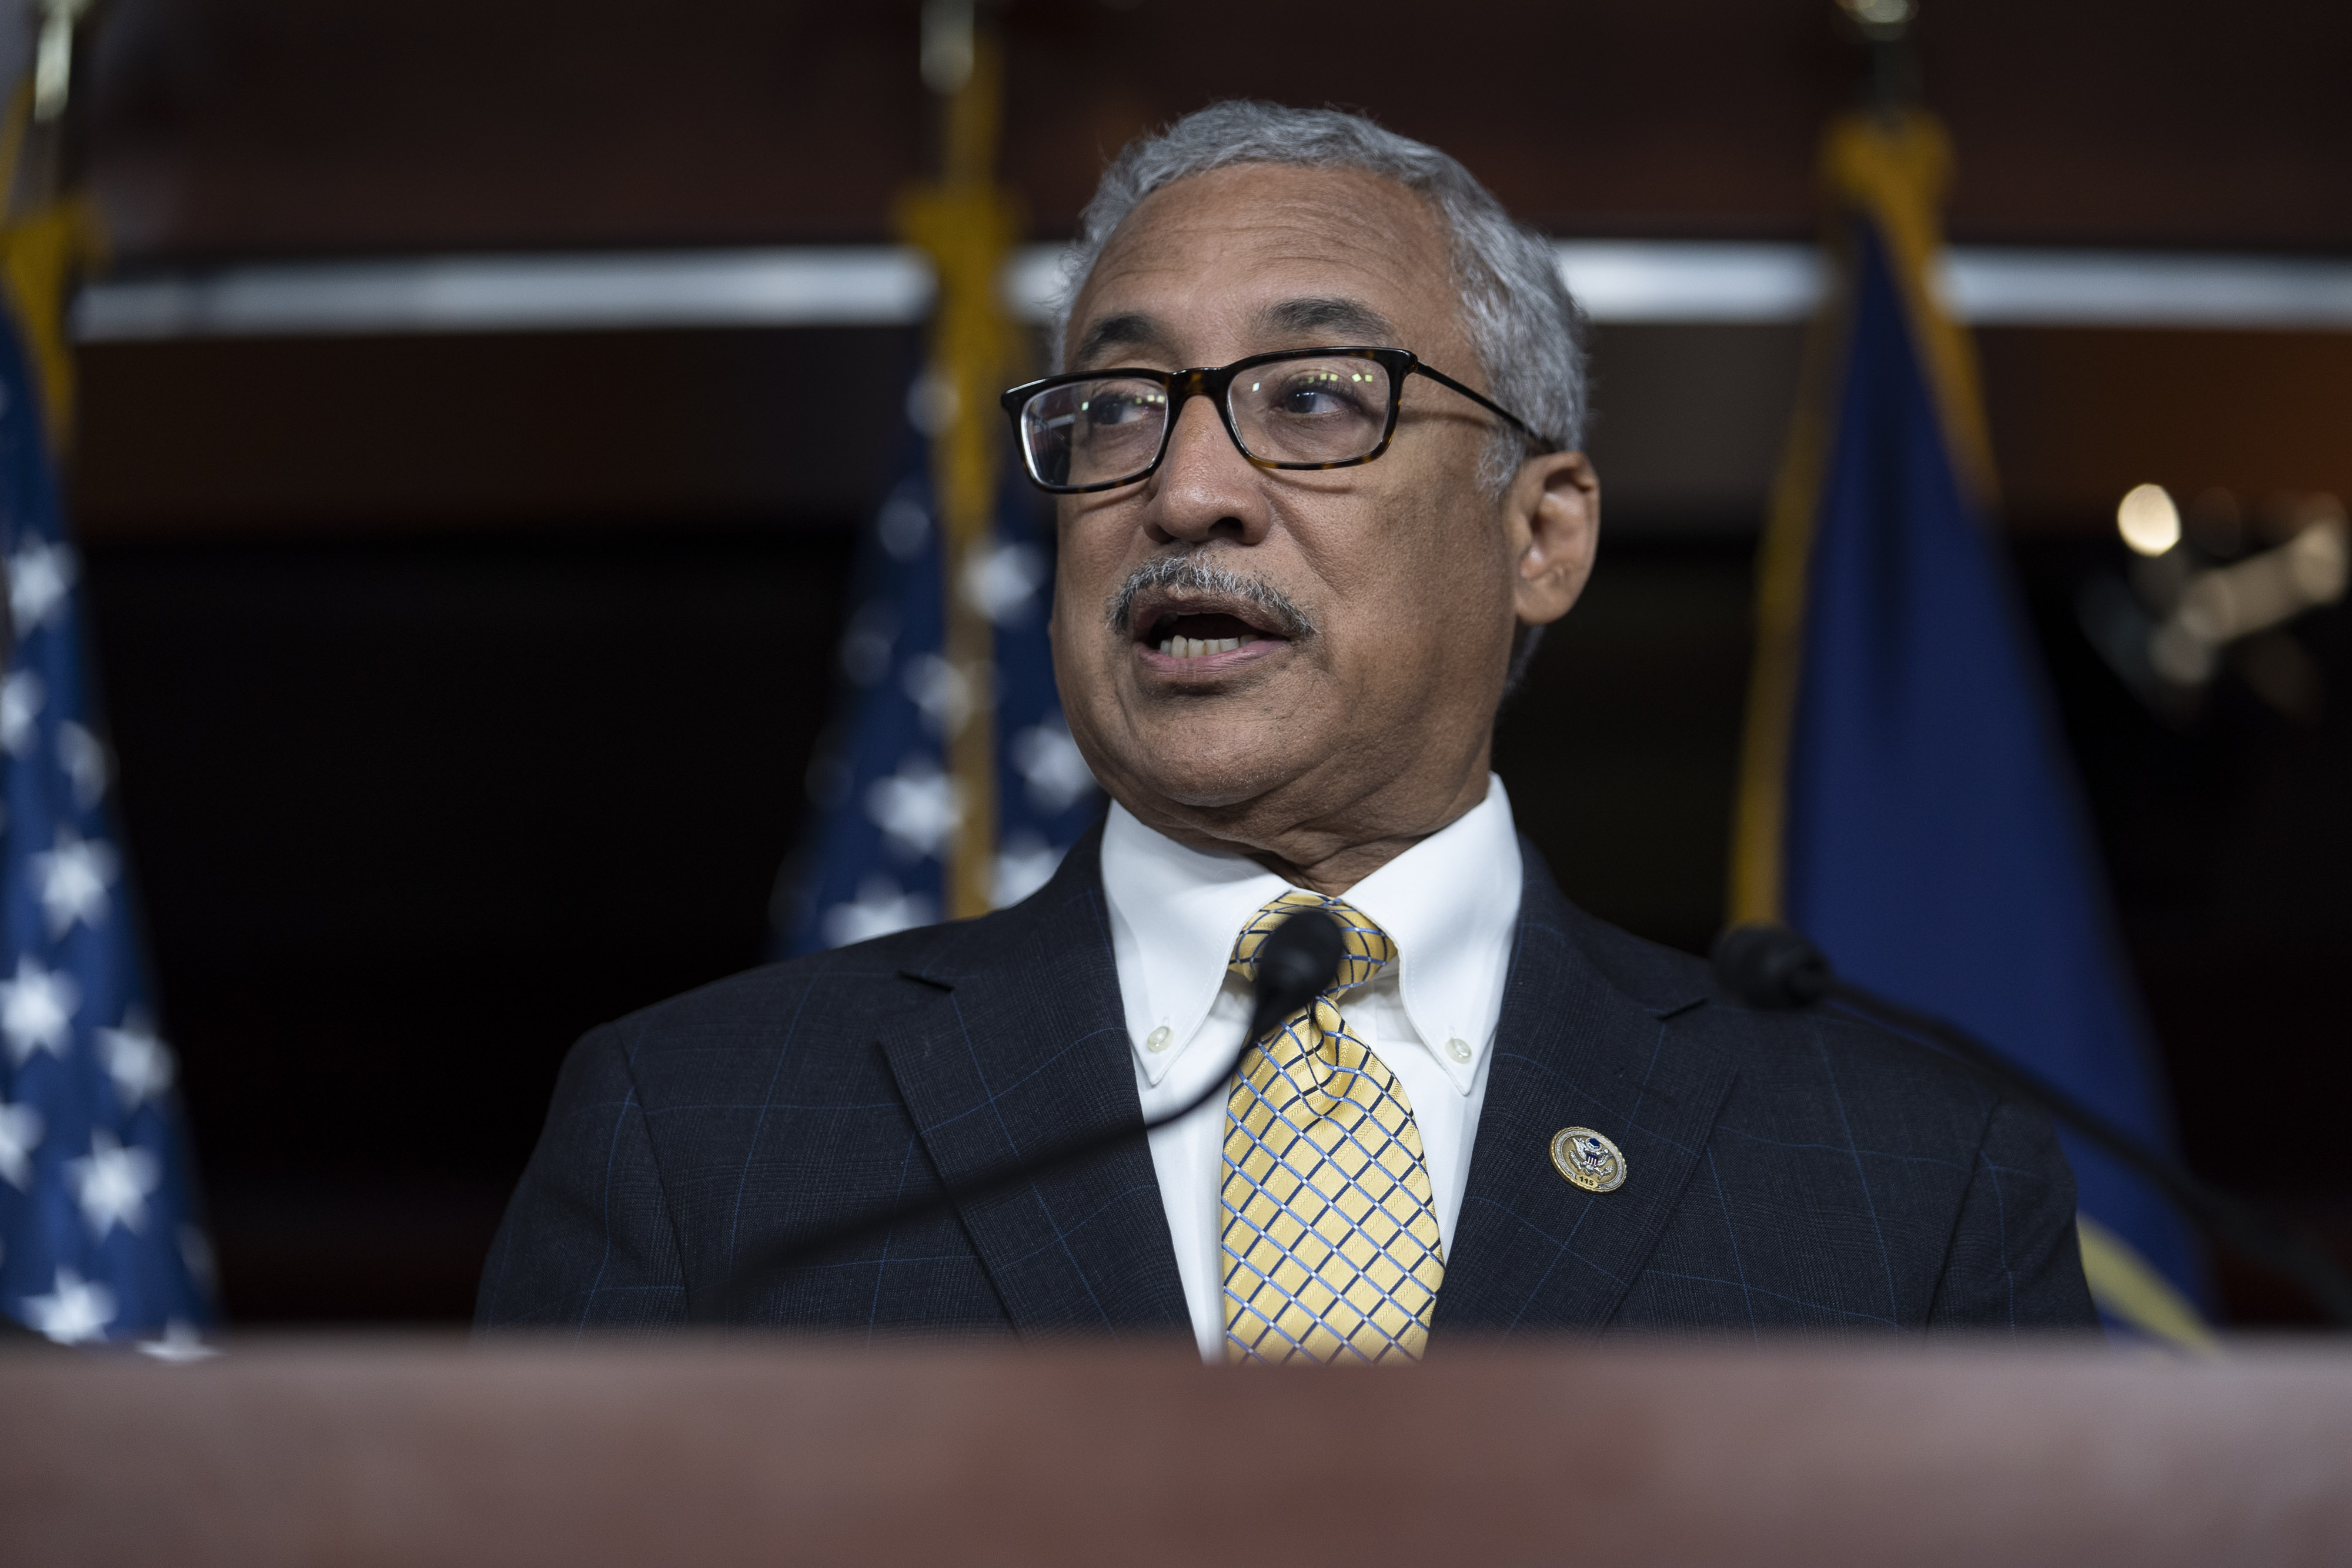 WASHINGTON, DC - JUNE 13: Rep. Bobby Scott (D-VA) speaks during a news conference held by House Democrats condemning the Trump Administration's targeting of the Affordable Care Act's pre-existing condition, in the US Capitol on June 13, 2018 in Washington, DC. (Photo by Toya Sarno Jordan/Getty Images)